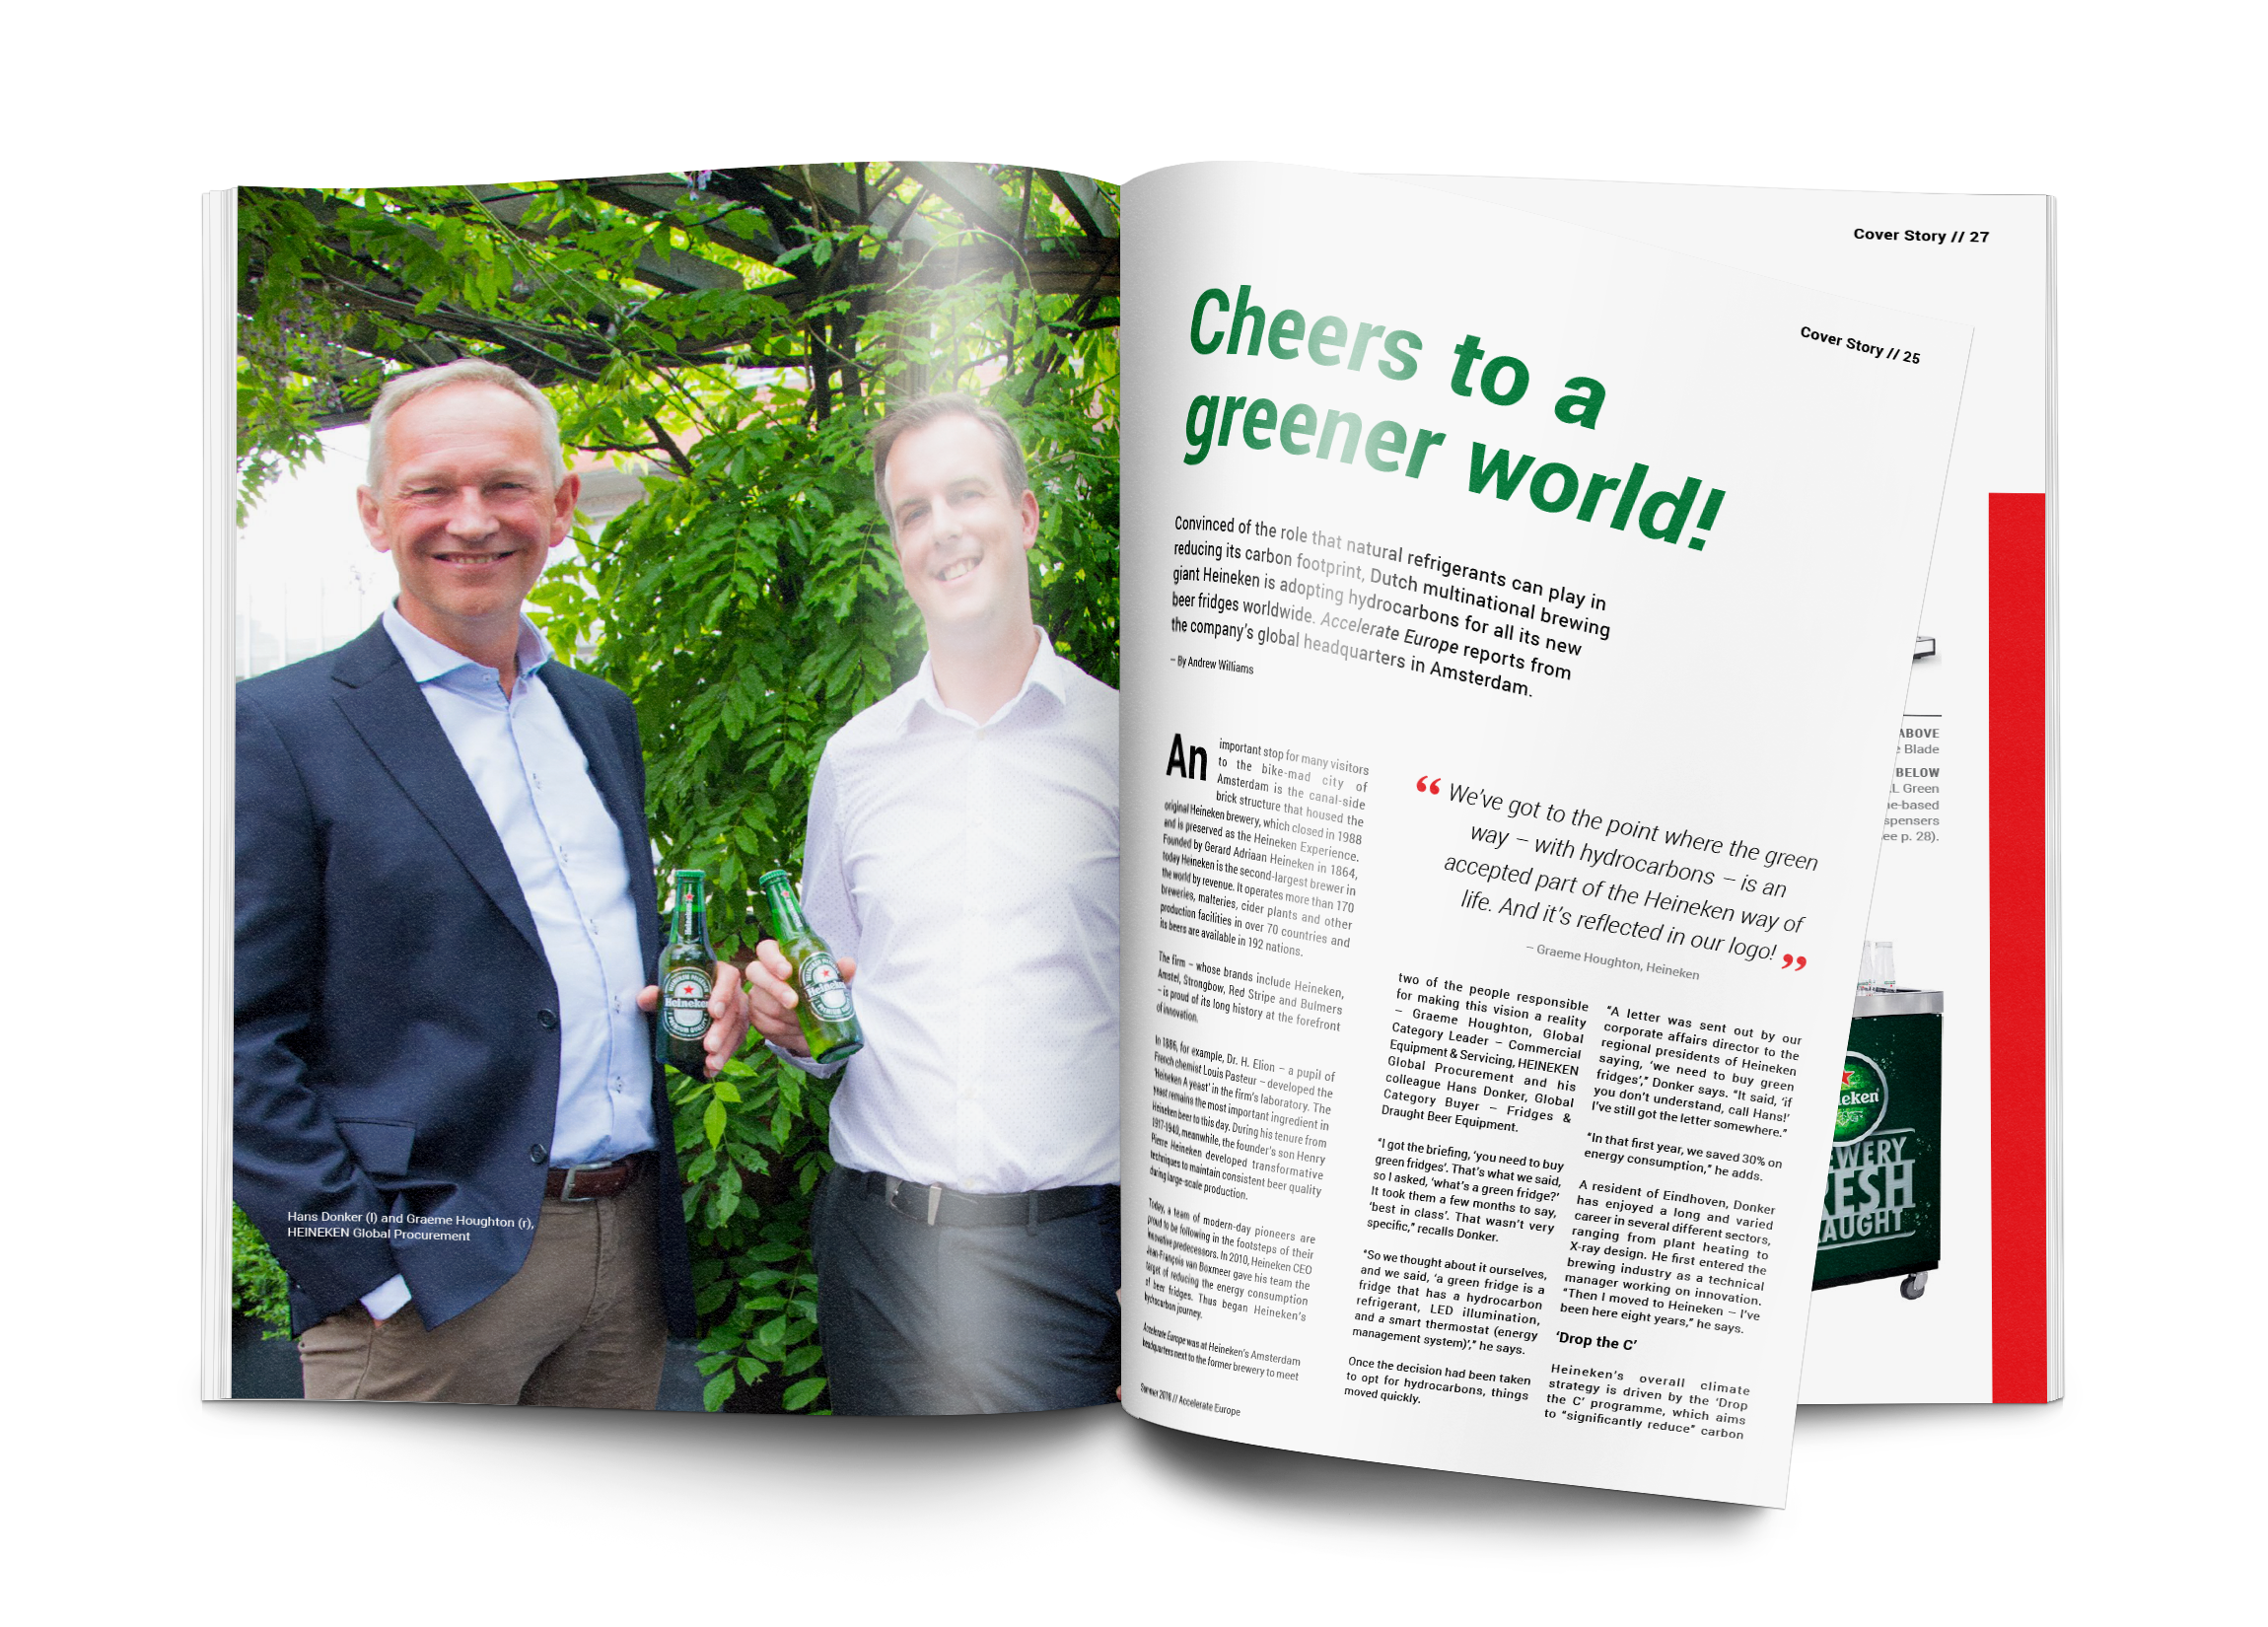 HEINEKEN: CHEERS TO A GREENER WORLD!